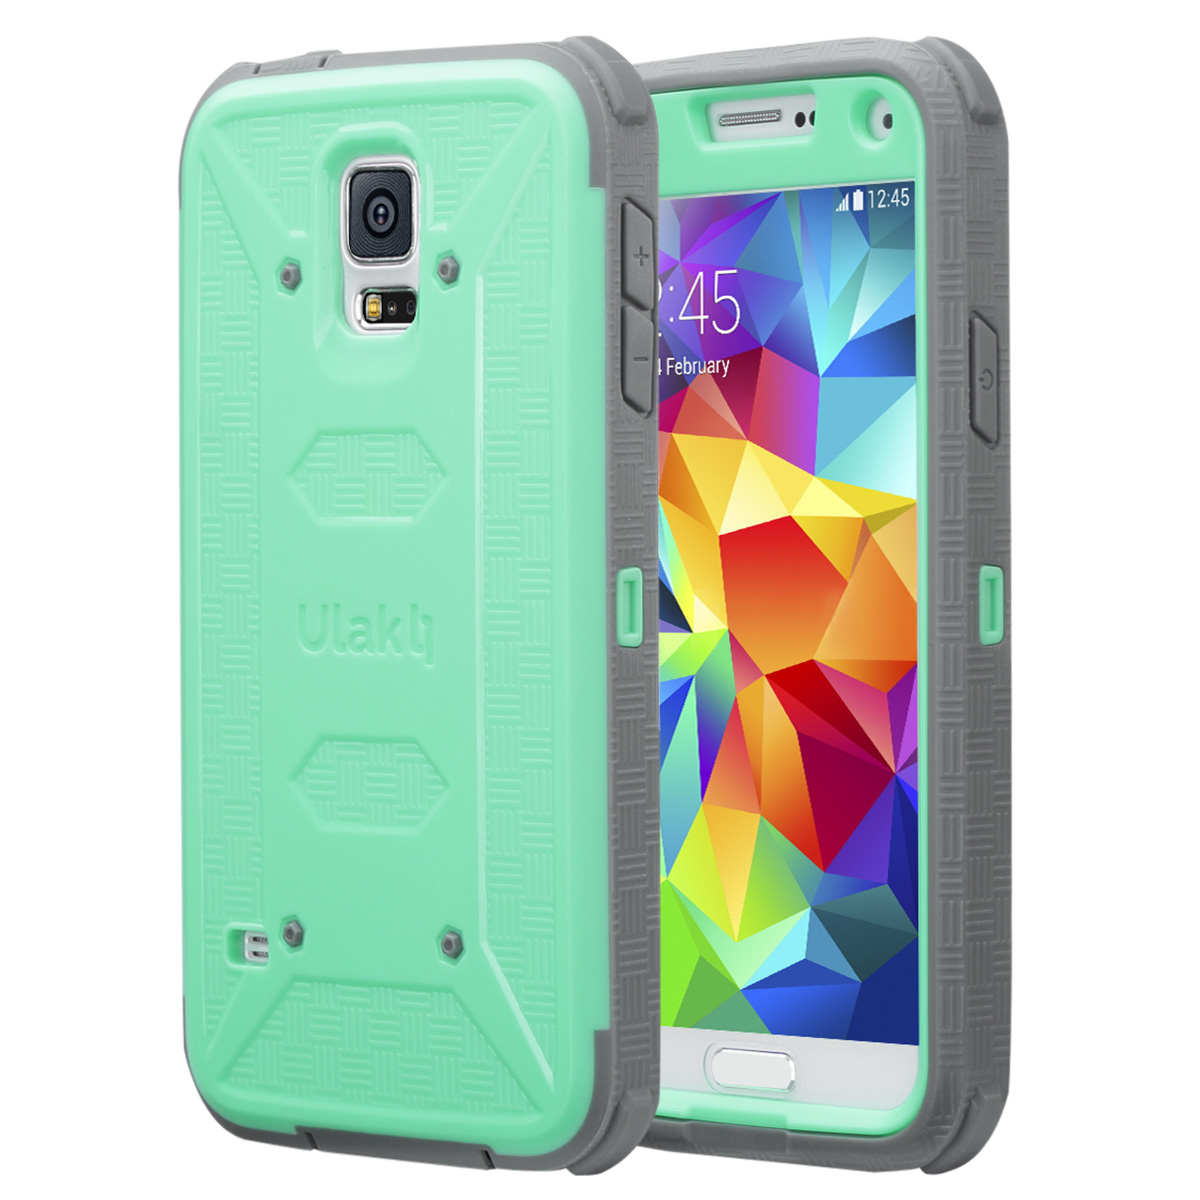 Galaxy S5 Case, ULAK [KNOX Armor] Rugged Shock Absorbing Dual Layer Protective Case Cover for Samsung Galaxy S5 (2014)